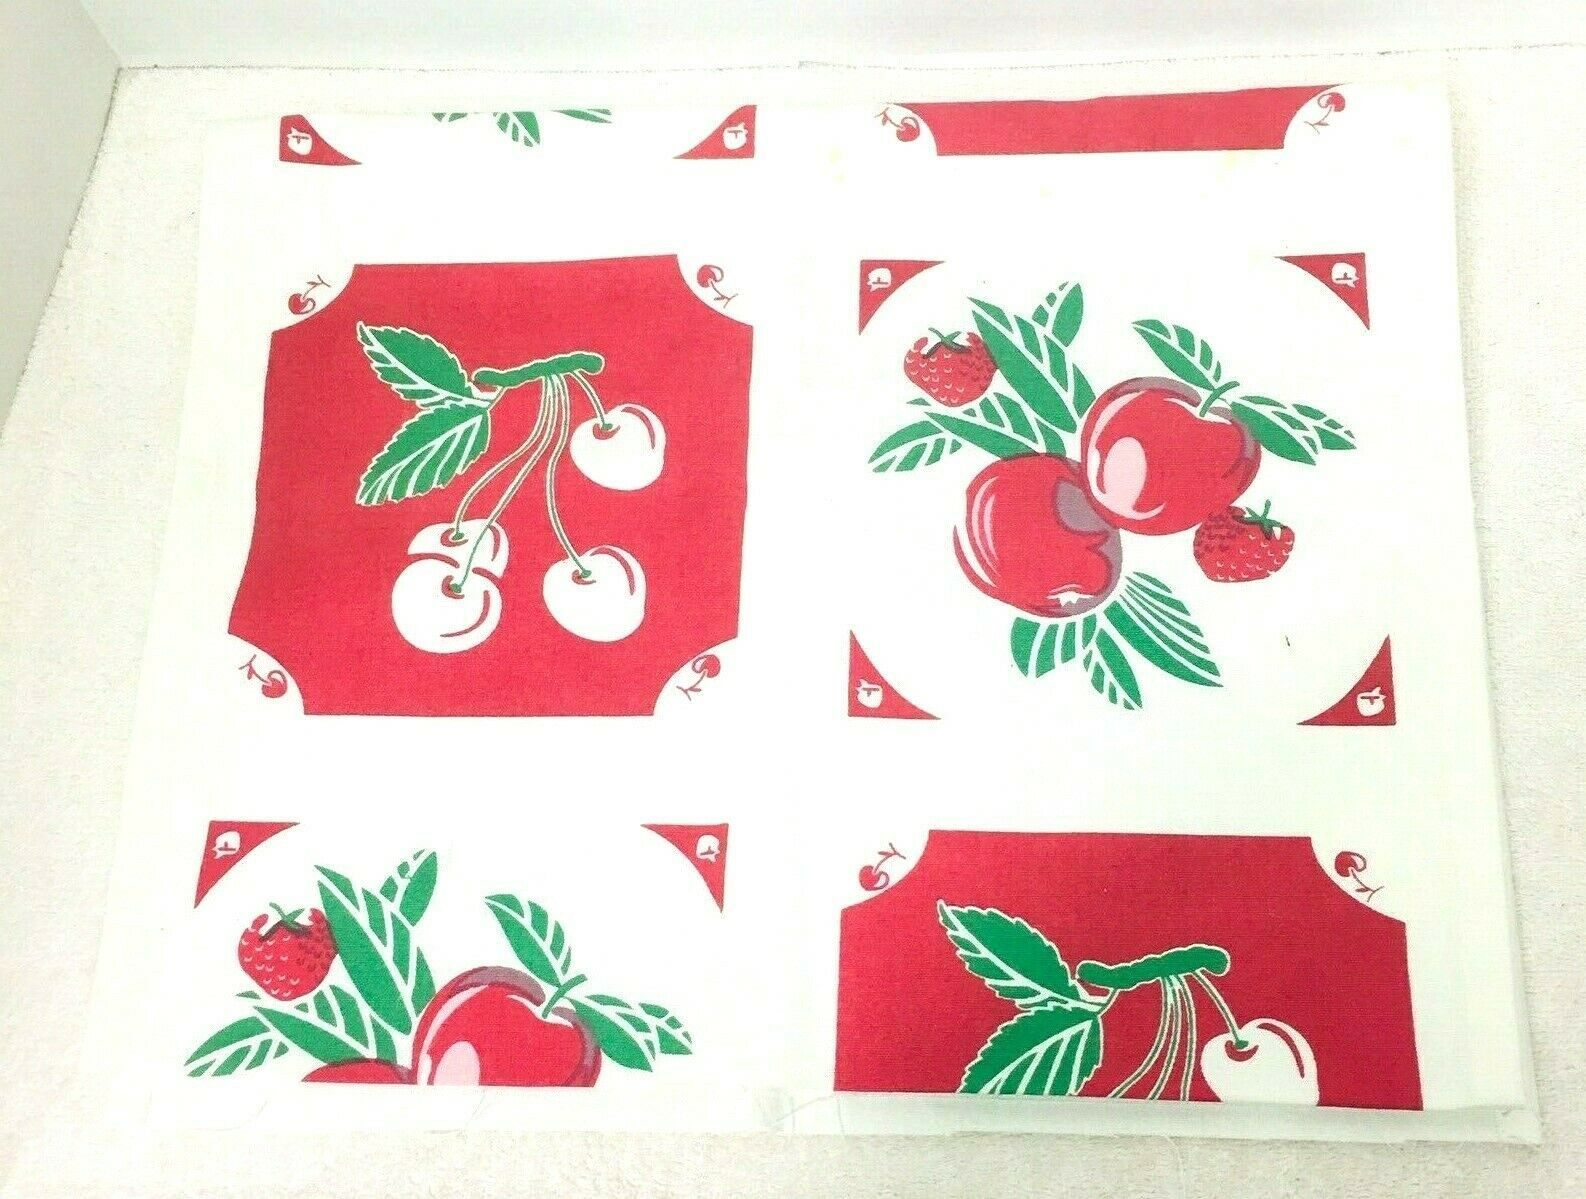 Reproduction Kitchen Toweling Towel Fabric Unsewn Red Cream Green Cherries Apple image 7